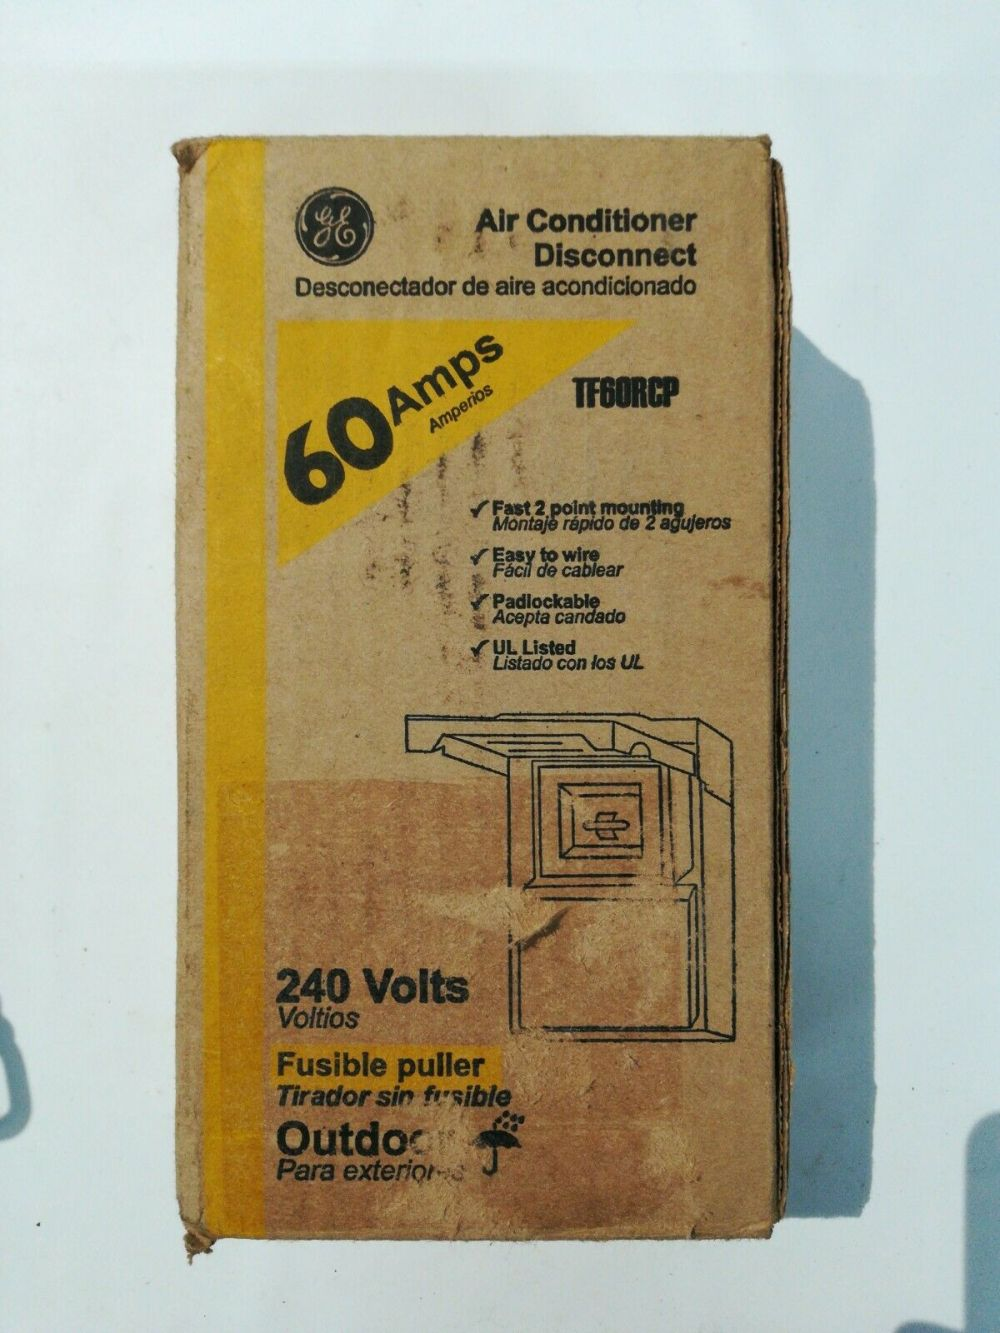 medium resolution of ge air conditioner disconnect switch tf60rcp 60 amp 240v for sale online ebay